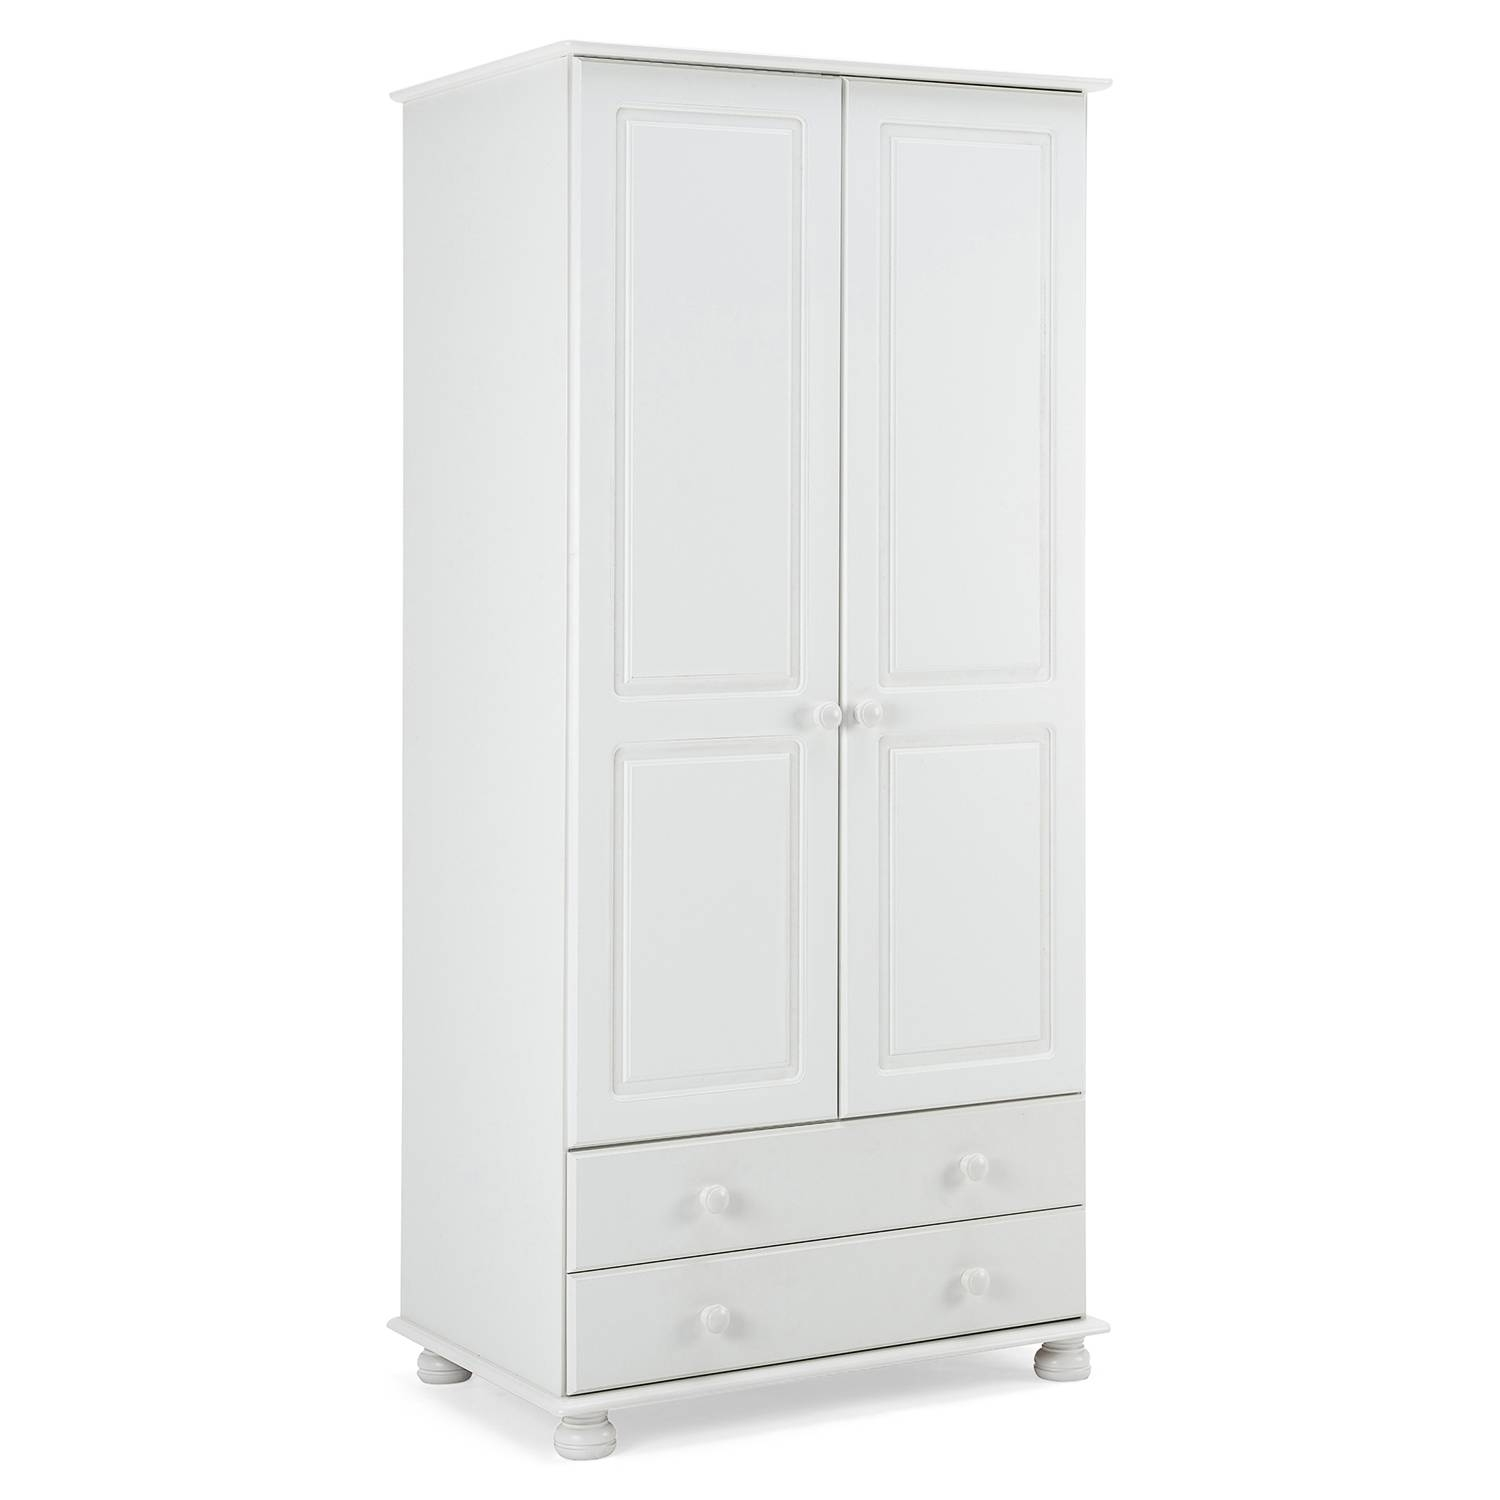 Steens Richmond 2 Door Combi Wardrobe In White – Next Day Delivery Intended For Combi Wardrobes (Gallery 8 of 15)